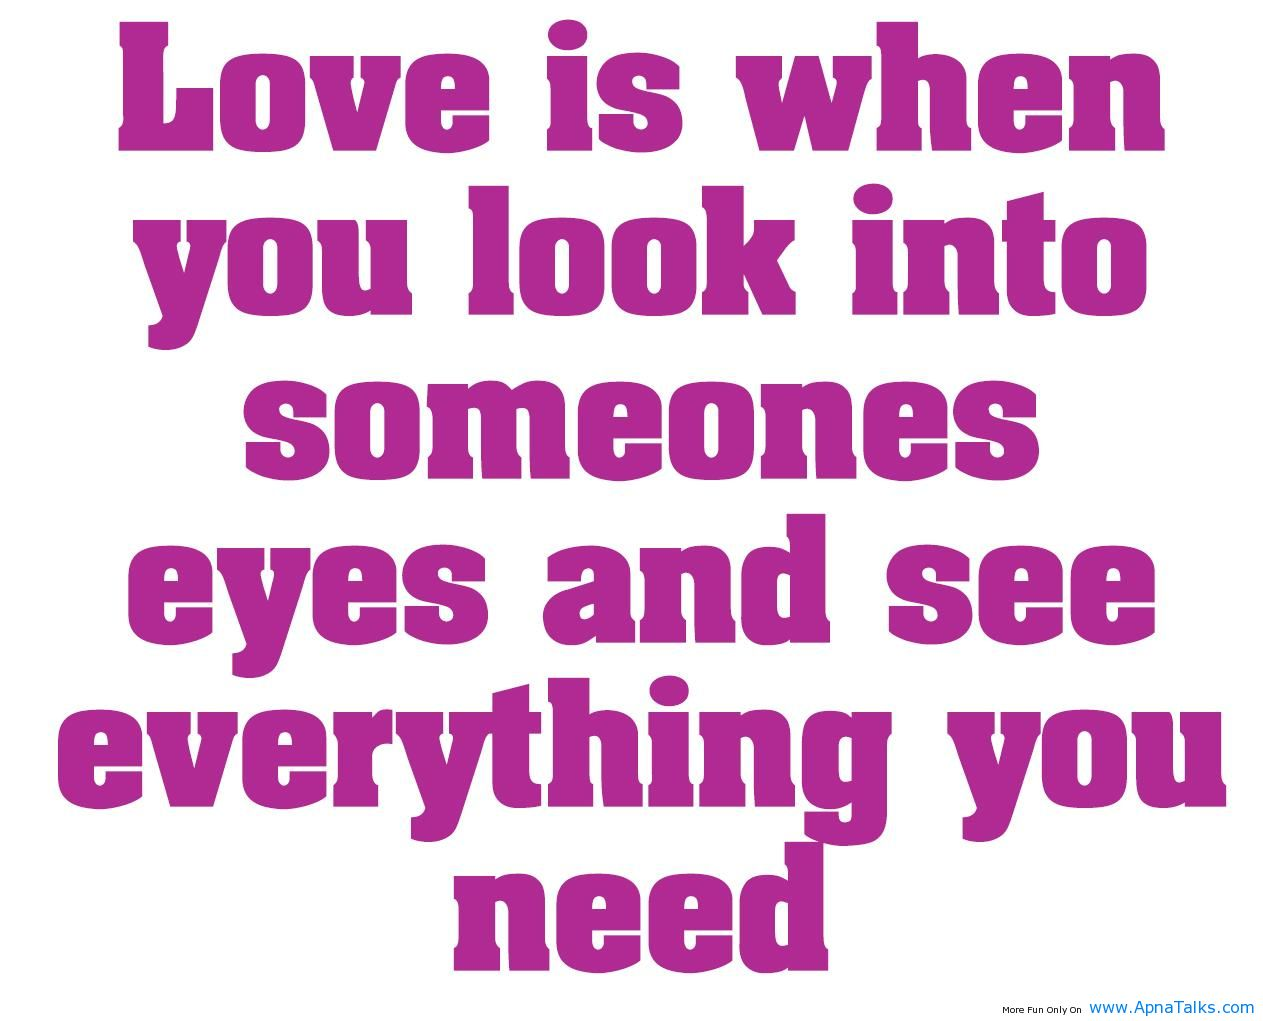 Real Love Funny Quotes : love, consummate love, empty love, romantic love, etc. Love quotes ...